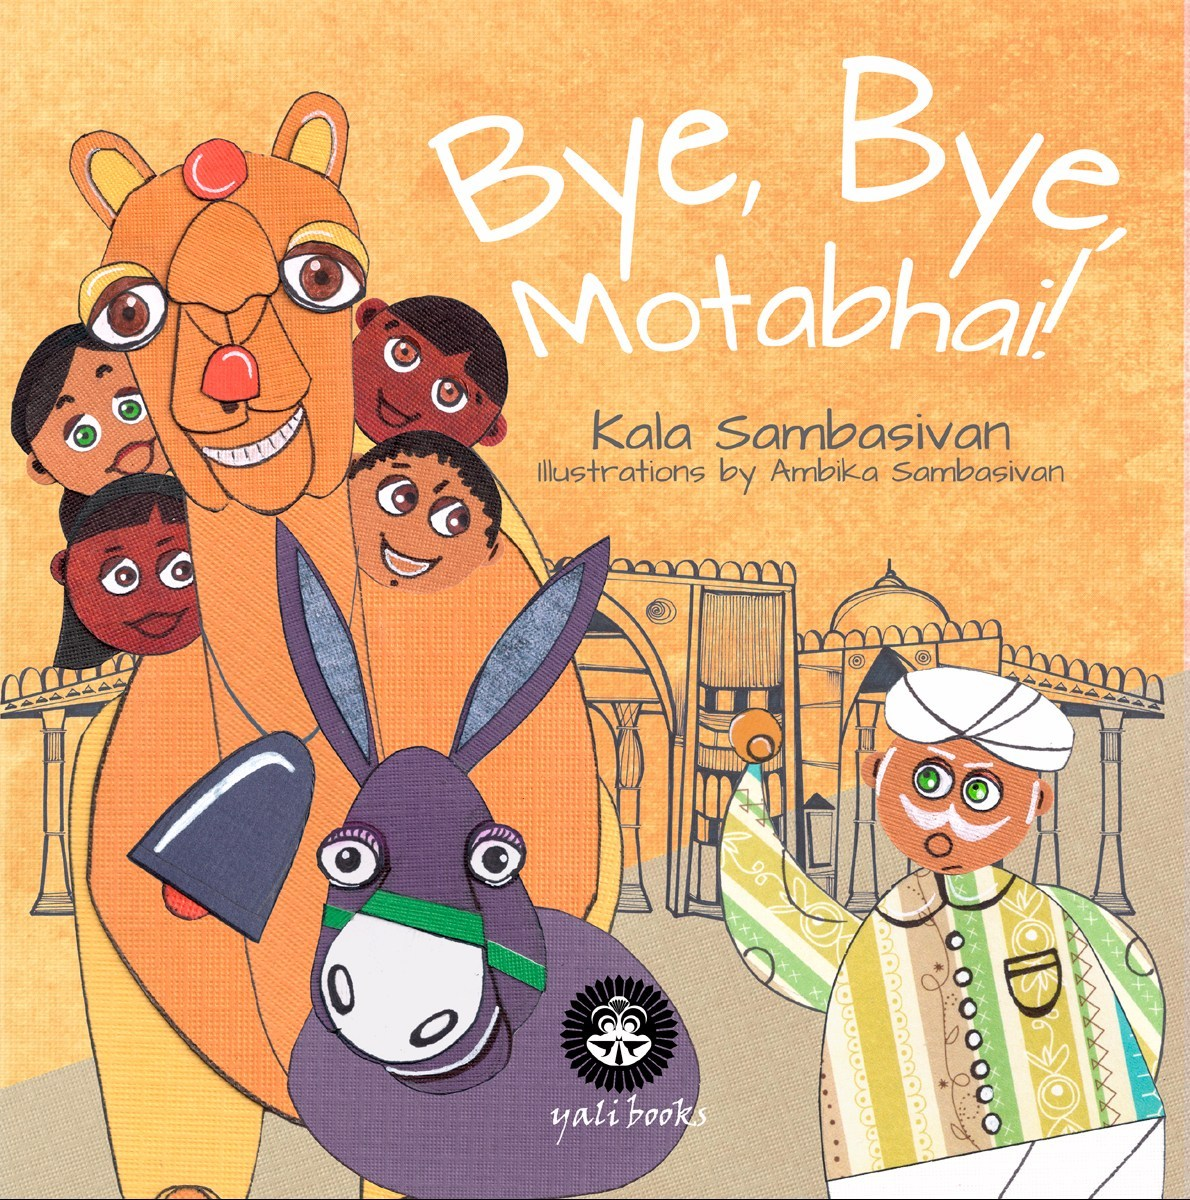 A Multicultural Children's Book Set in India: Bye, Bye, Motabhai!